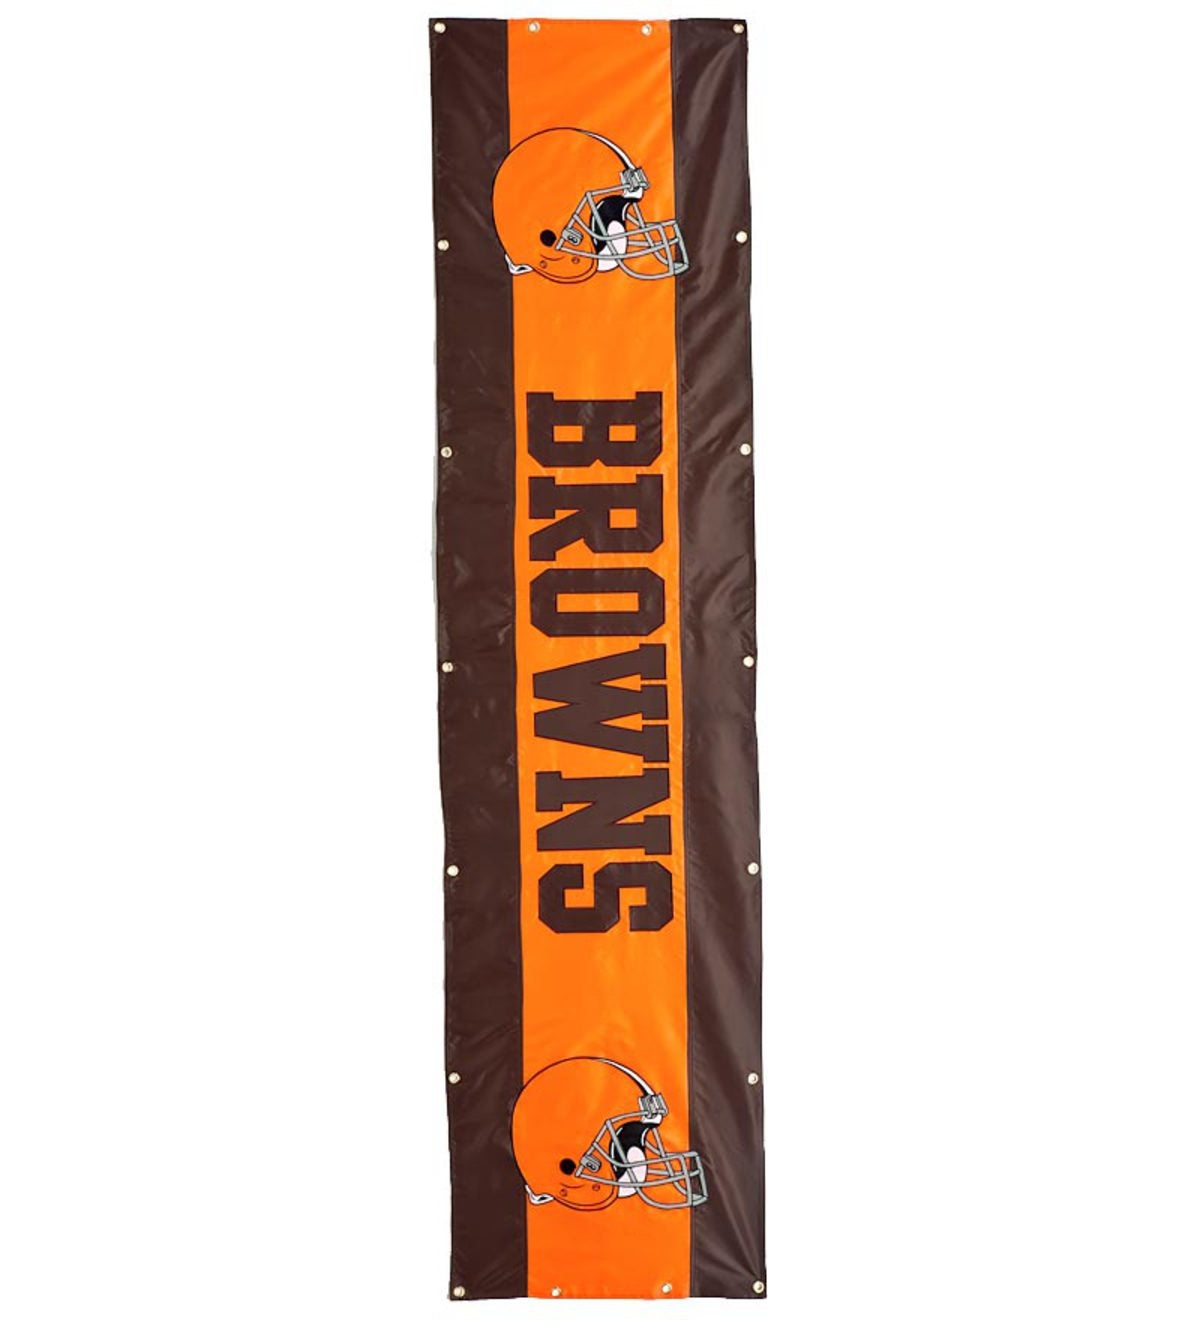 NFL Team-Themed Column Wraps - Cleveland Browns